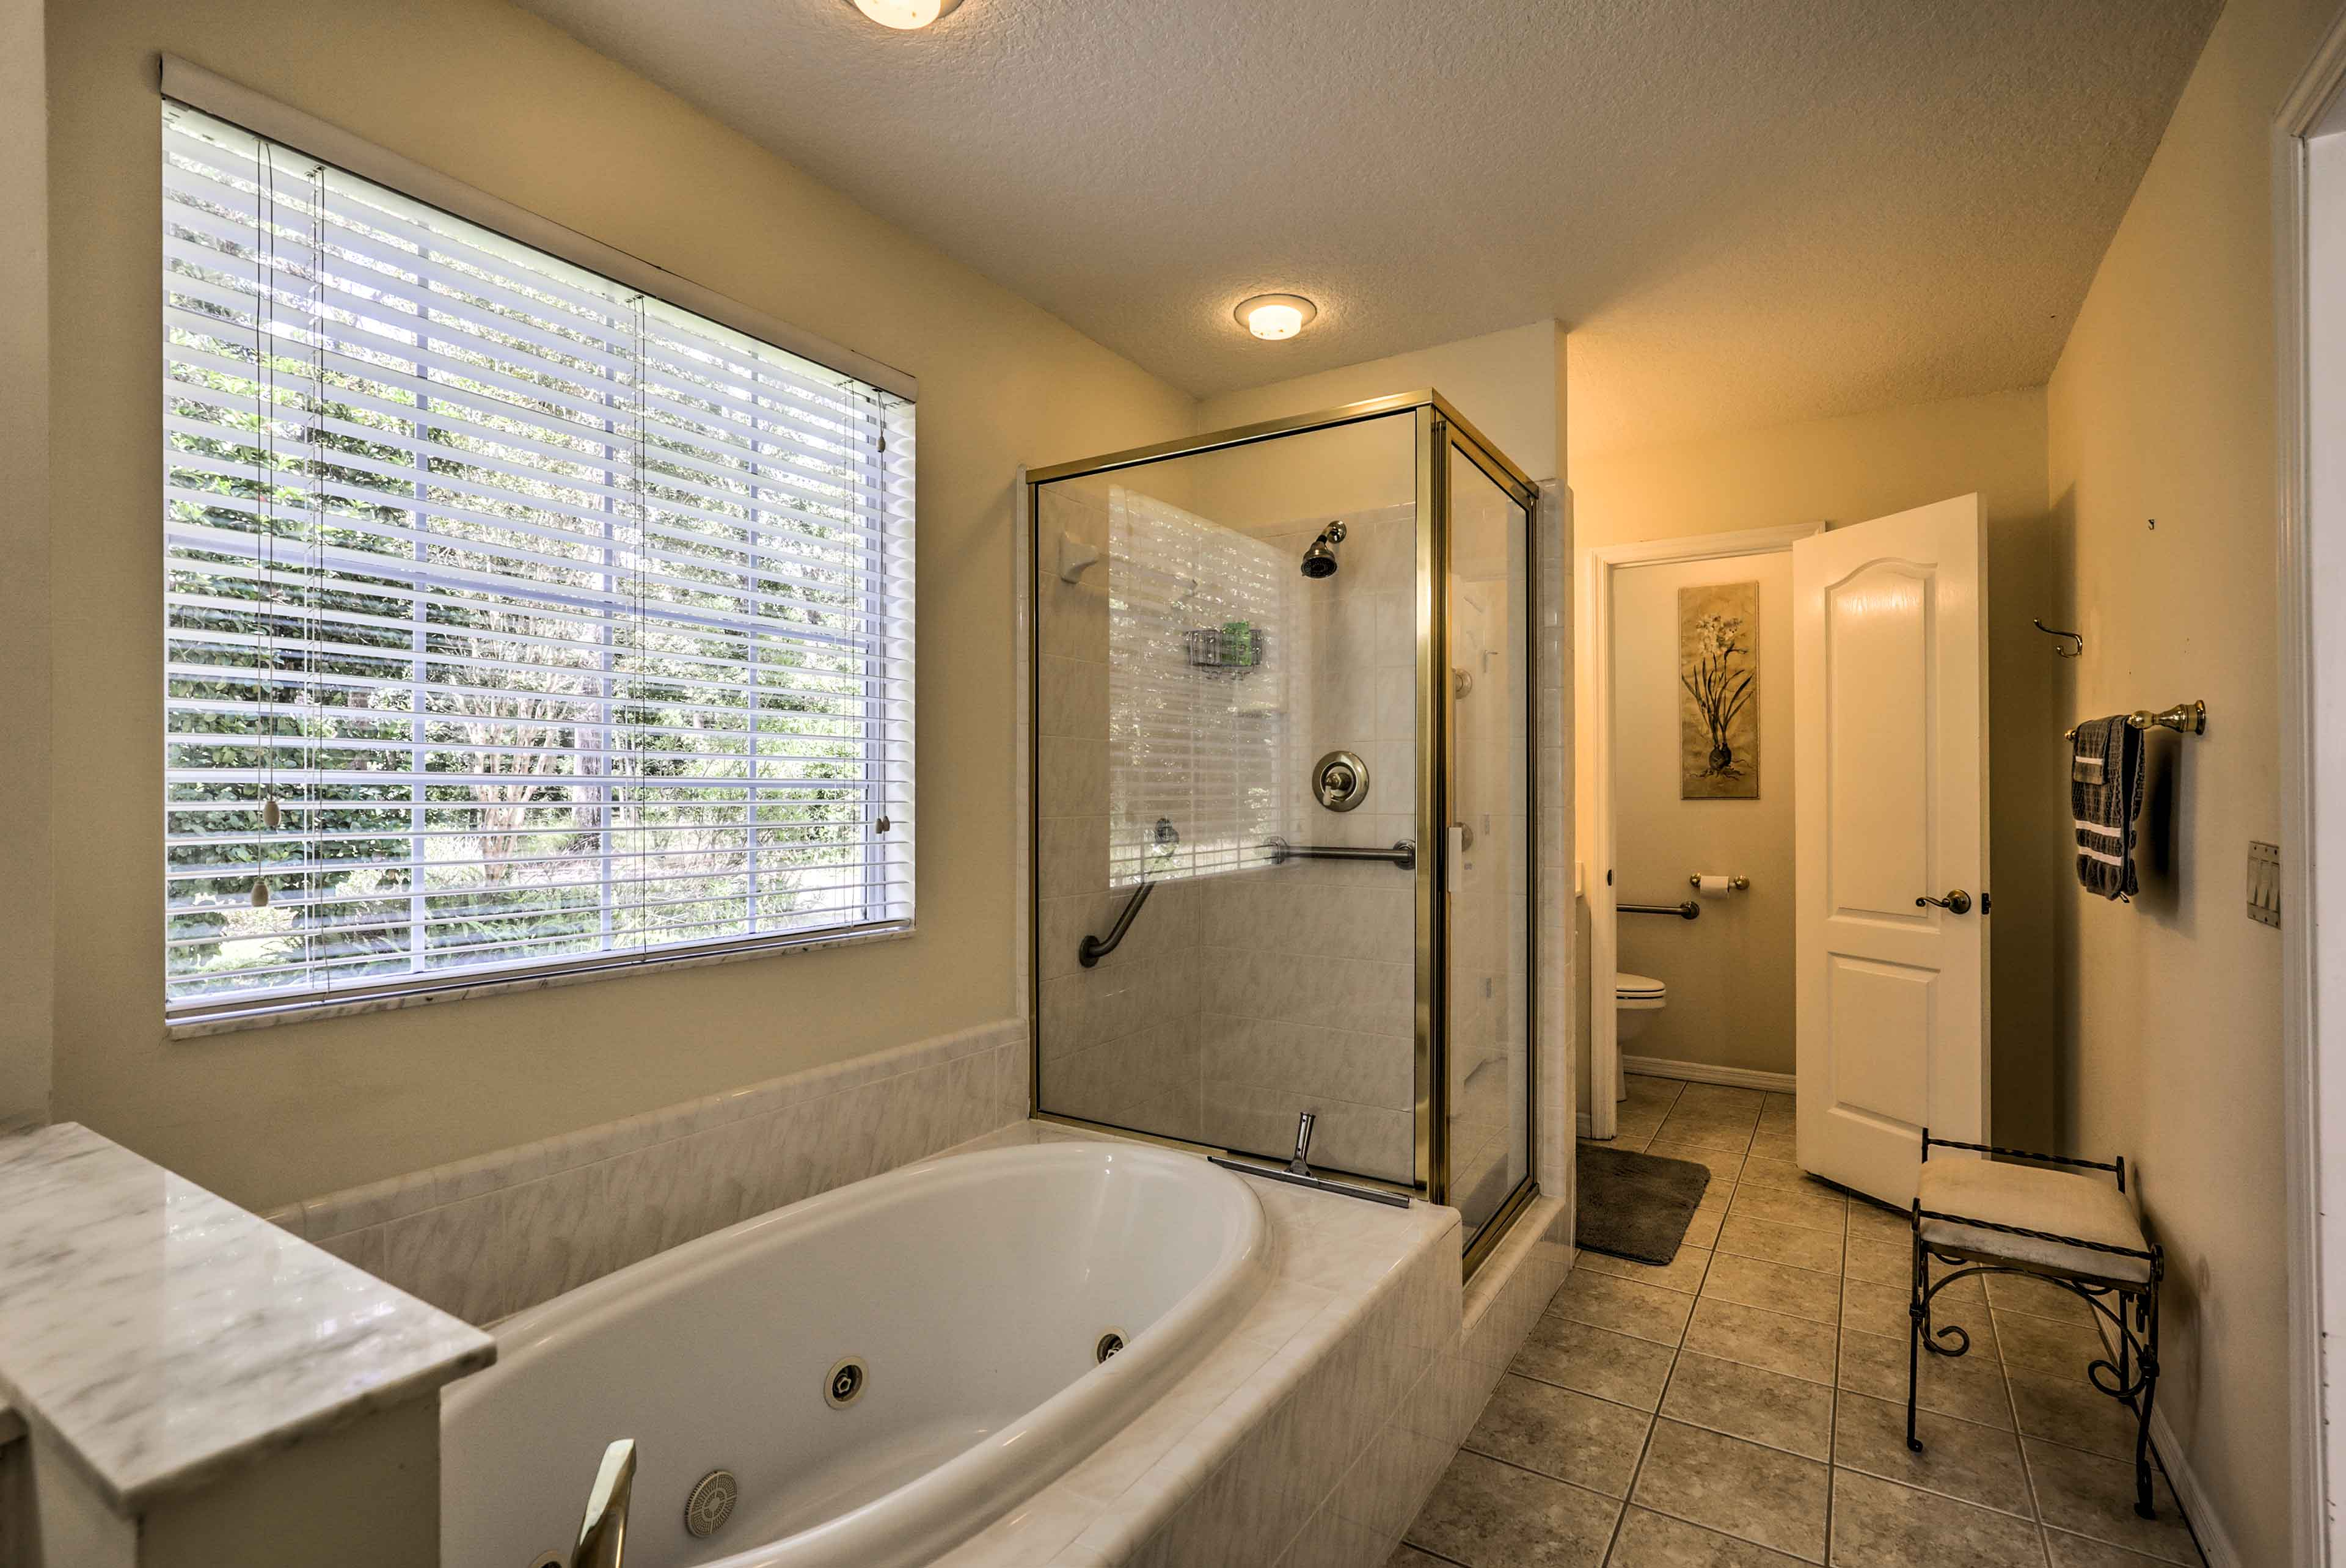 The en-suite master bathroom has a soaking tub and walk-in shower.